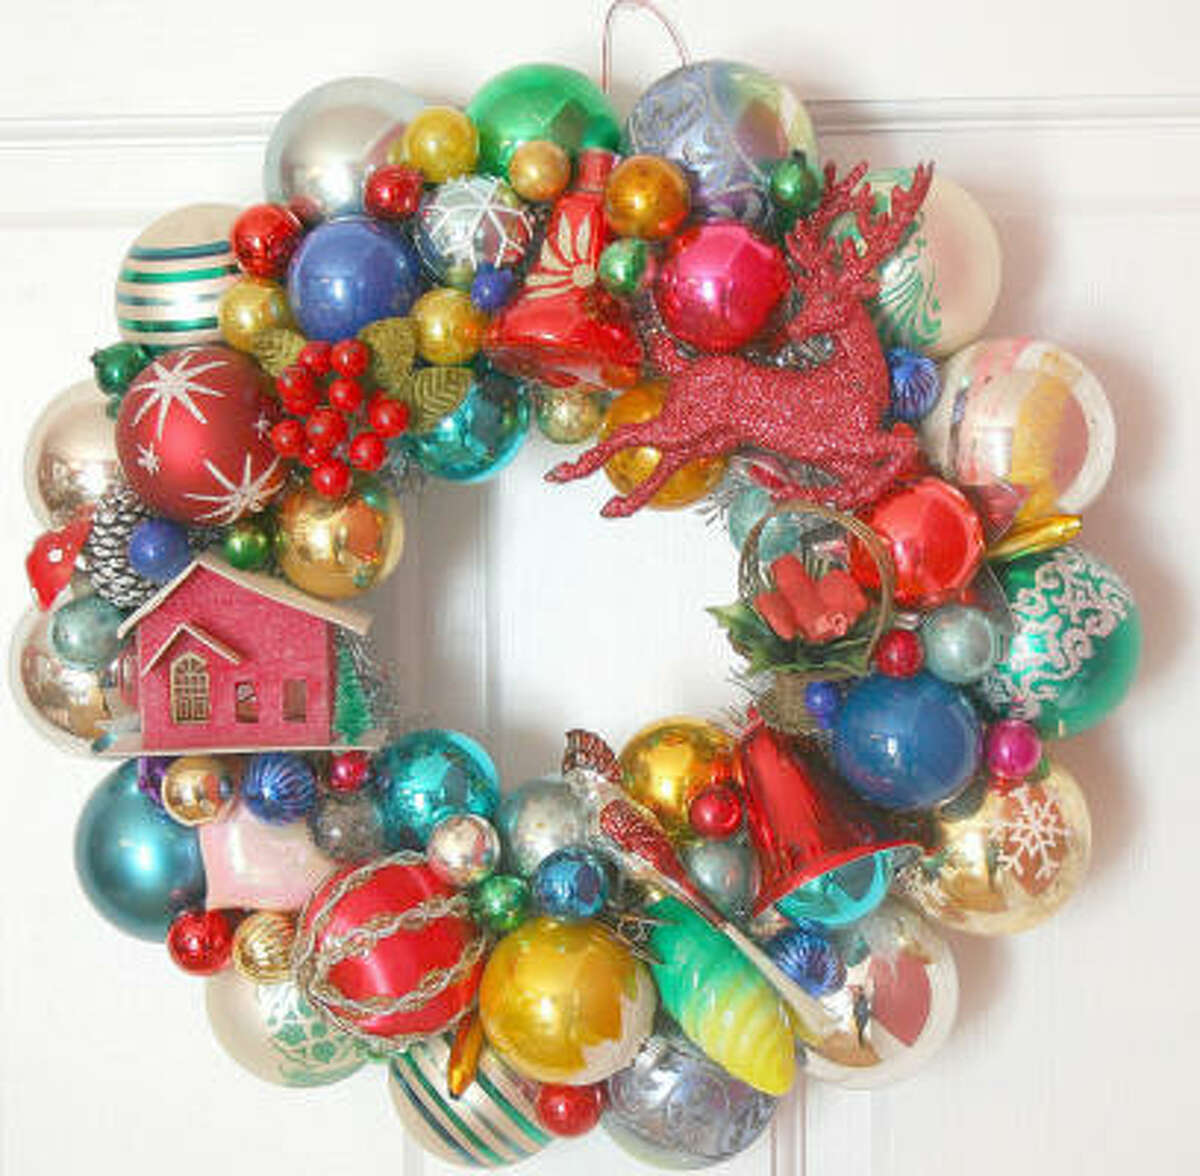 BUY: Wreaths covered in glass balls are trendy indoor decor. Here's one version from Martha Stewart Living.